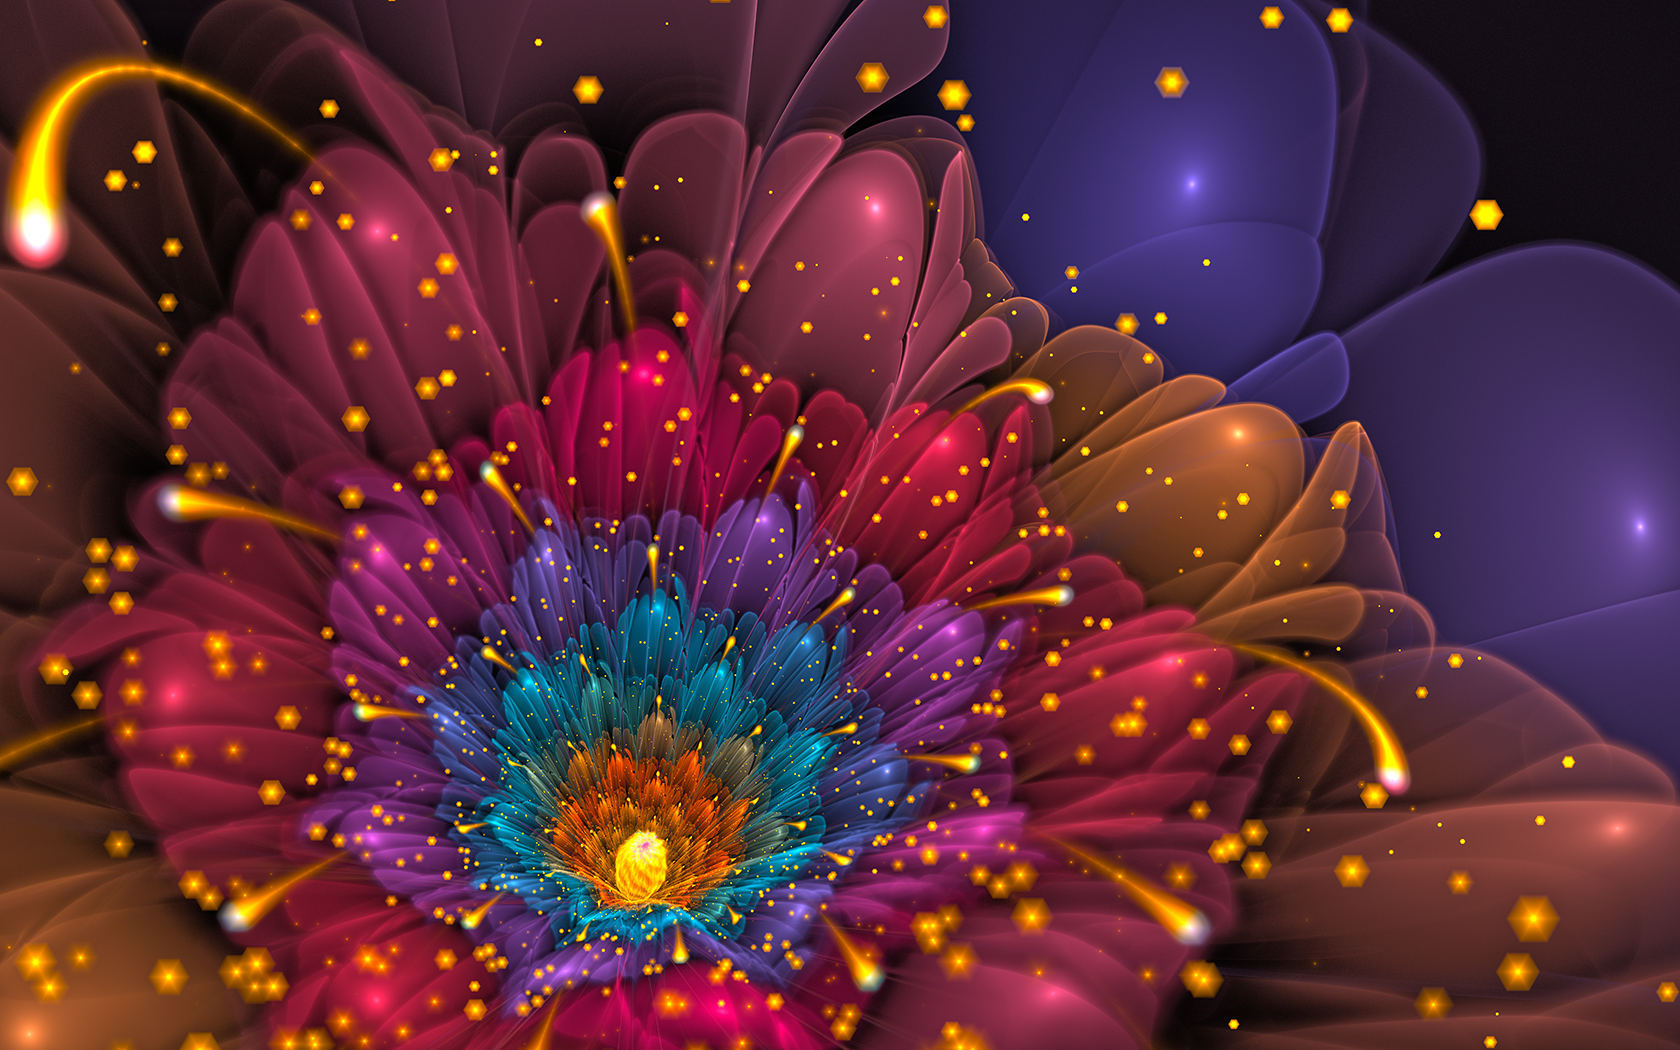 Free Colorful Flower Desktop Wallpaper: A Vision Of Delight Wallpaper And Background Image